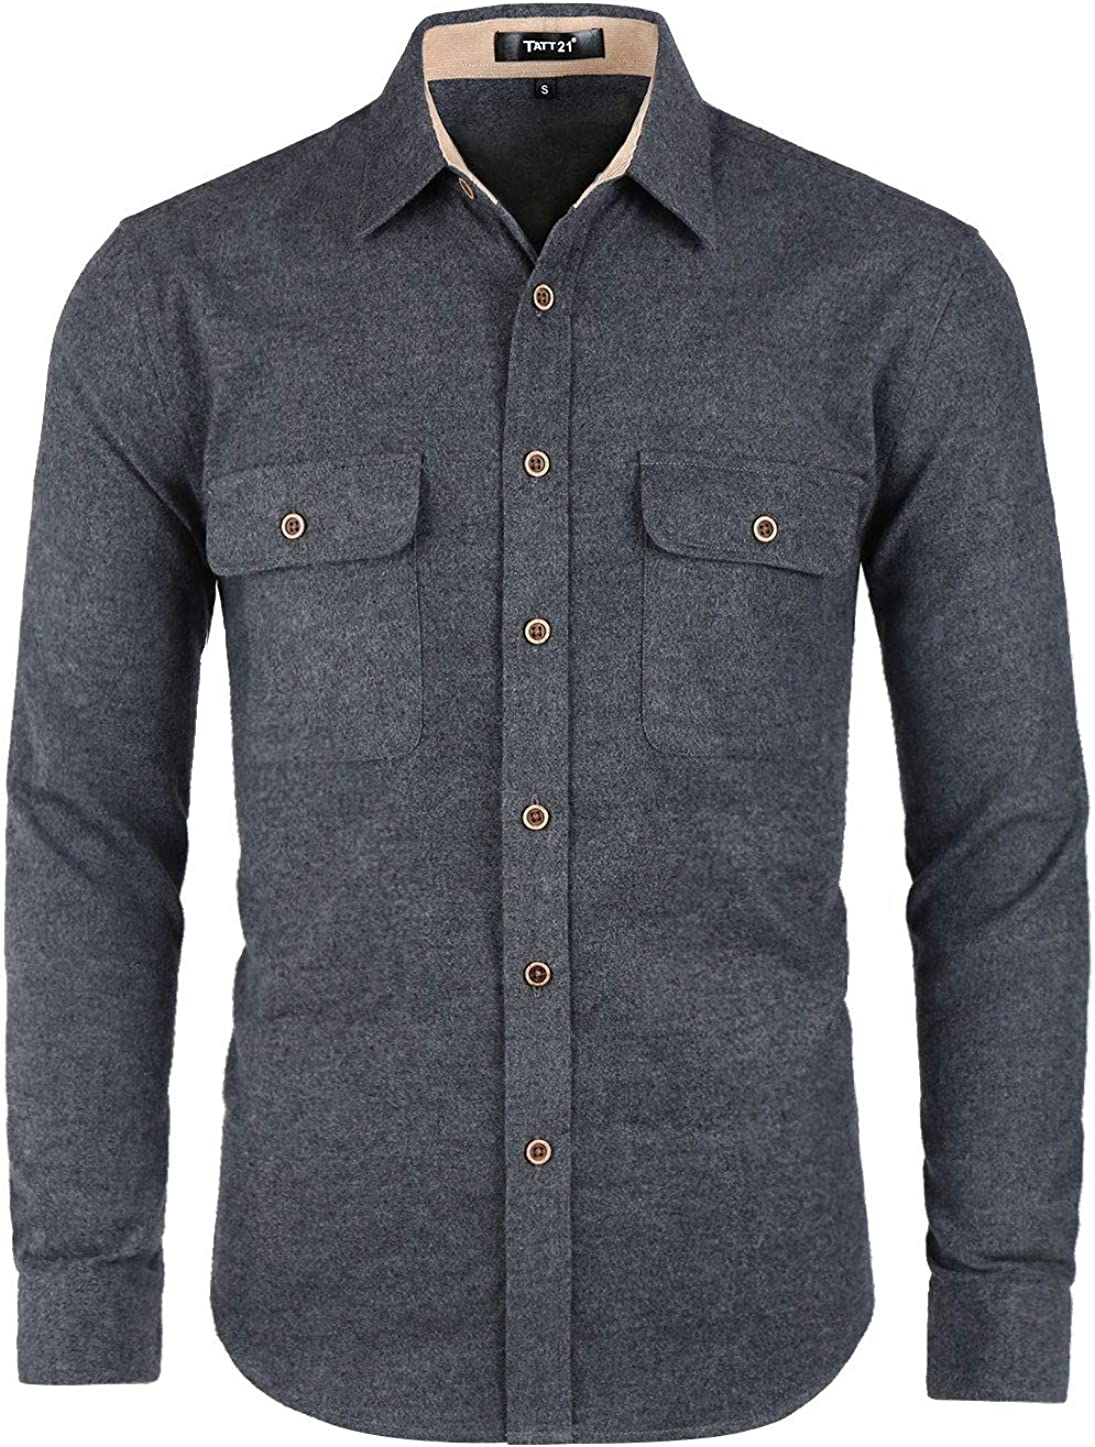 TATT 21 Men Contrast Collar Two Pockets Button Down Brushed Long Sleeve Casual Shirt